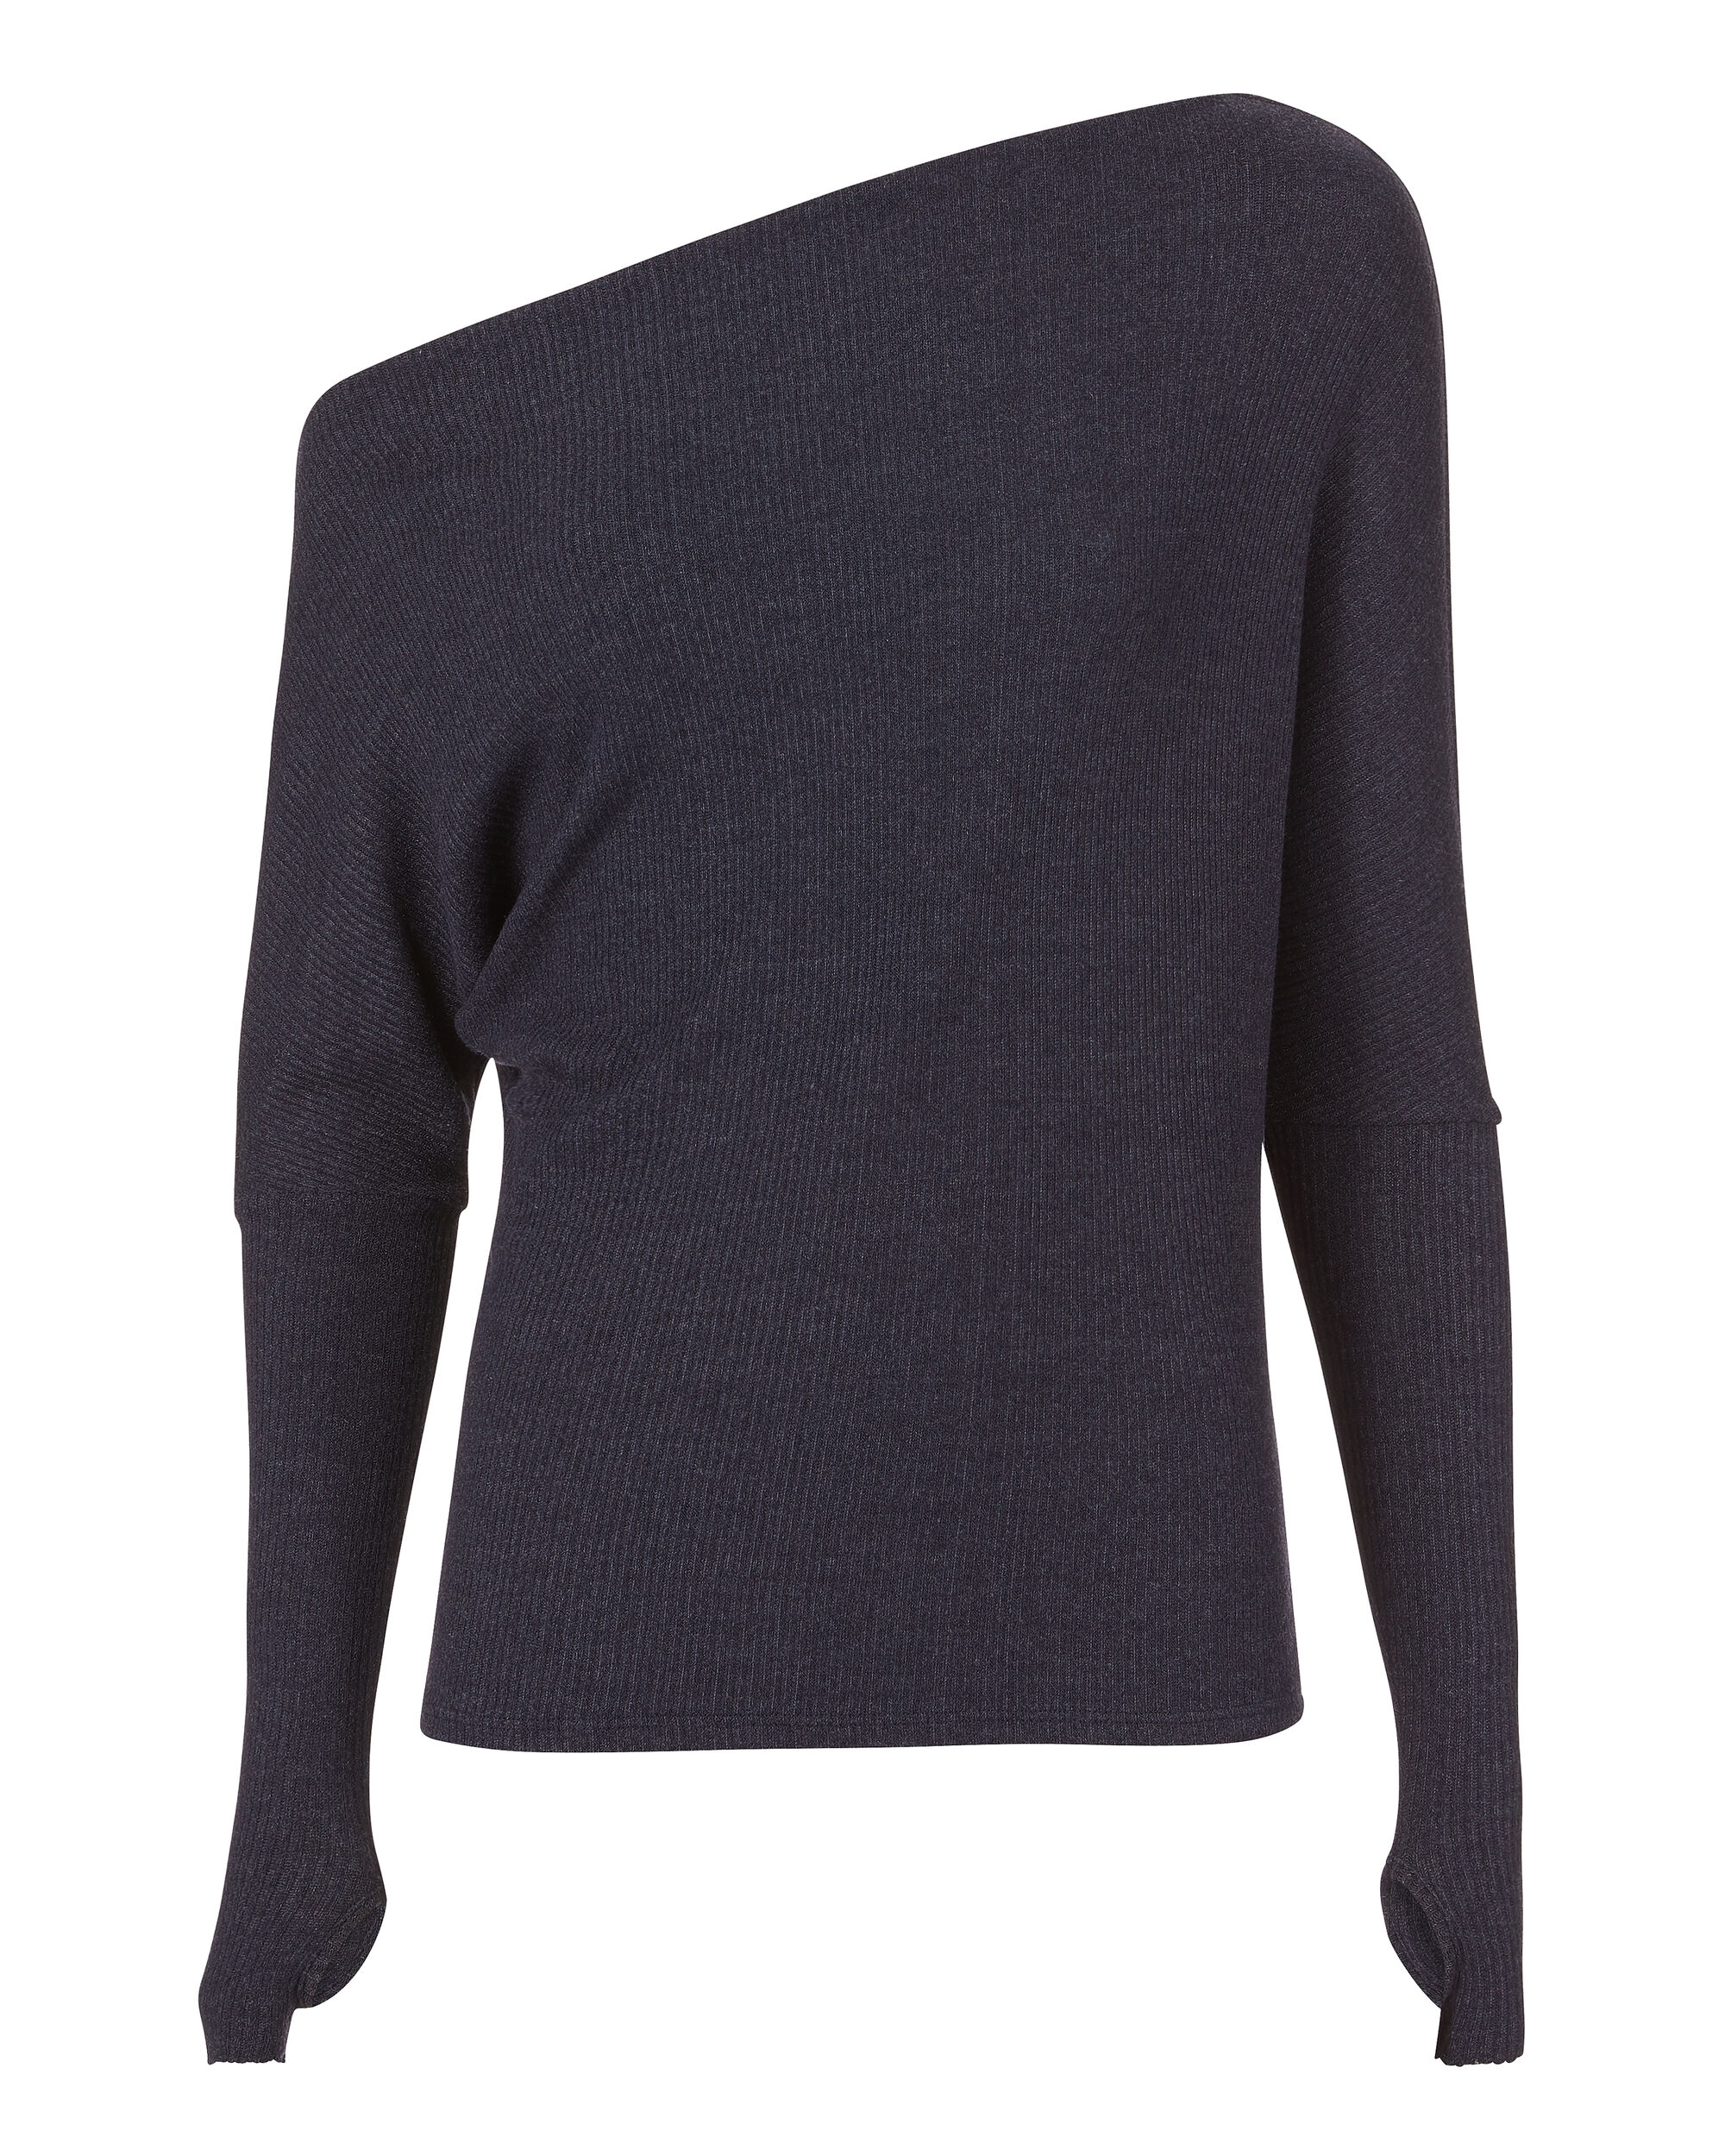 Off Shoulder Thumbhole Navy Sweater, NAVY, hi-res